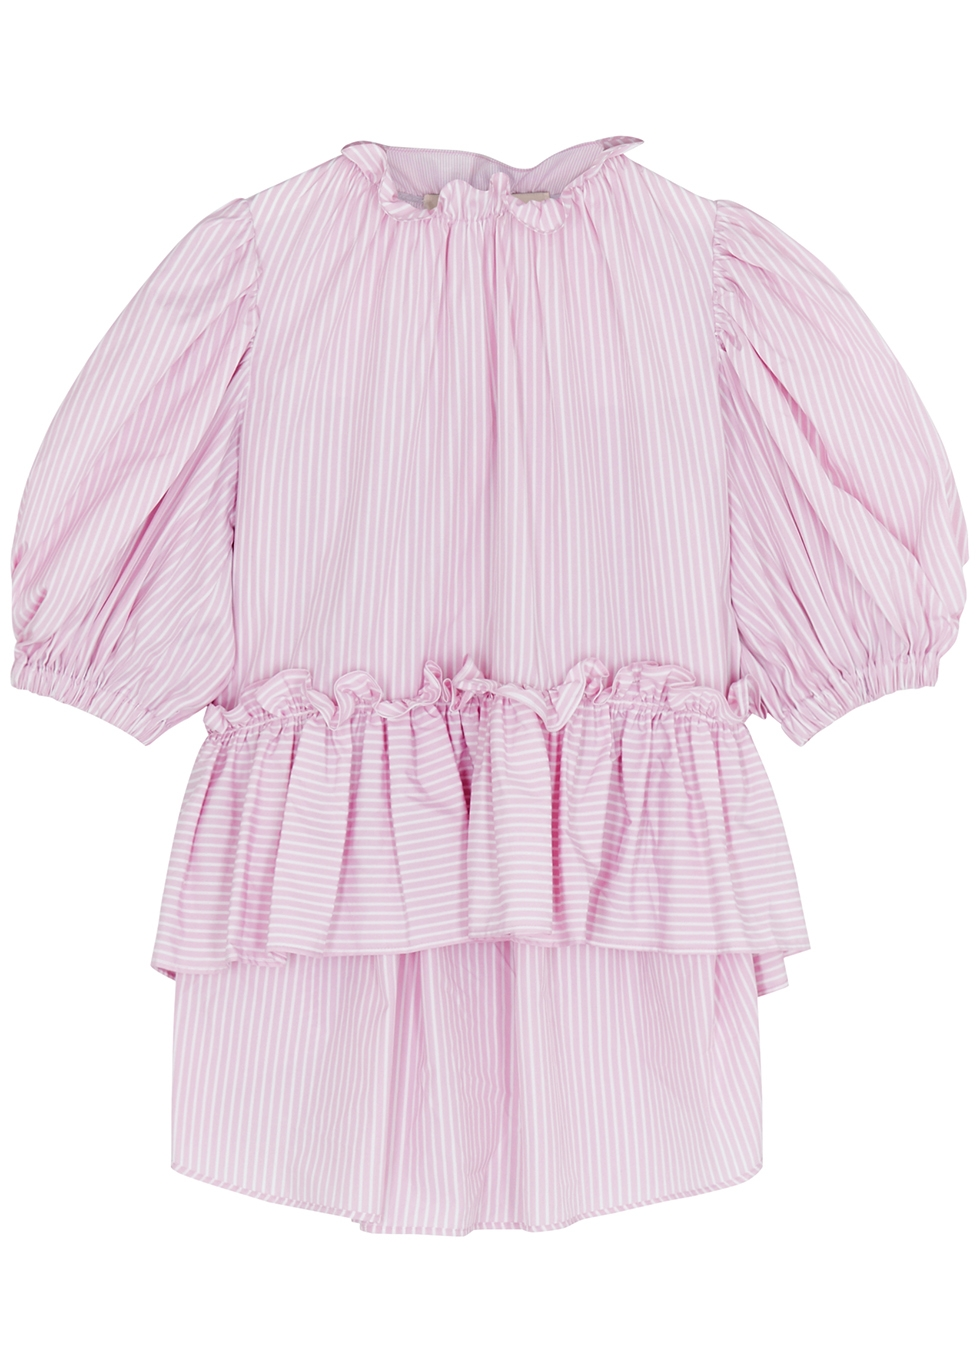 Helle pink striped cotton top